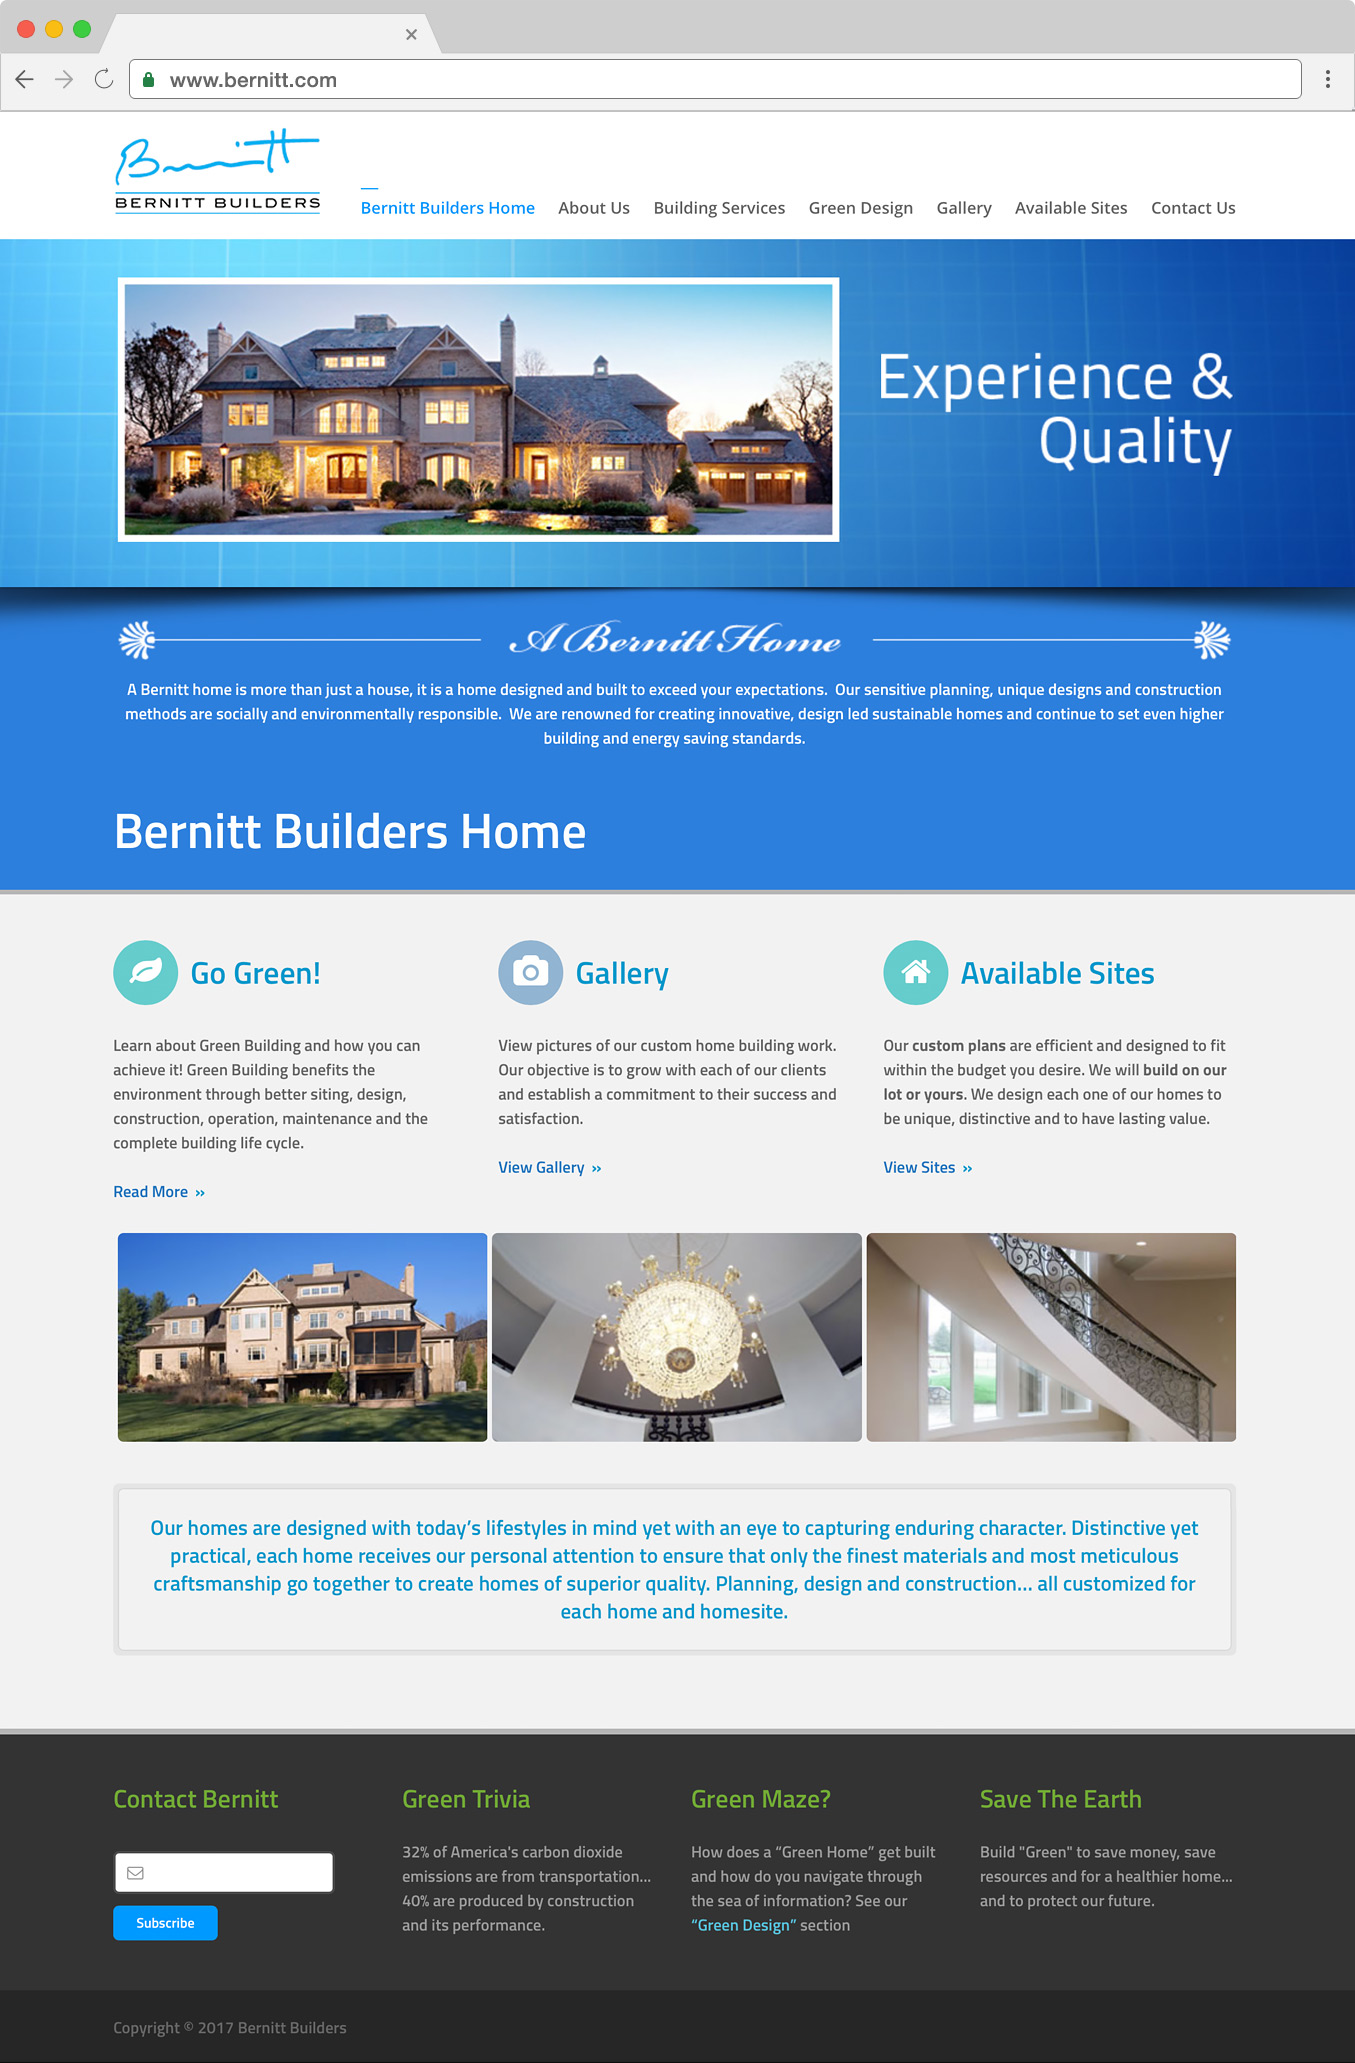 Bernitt Builders